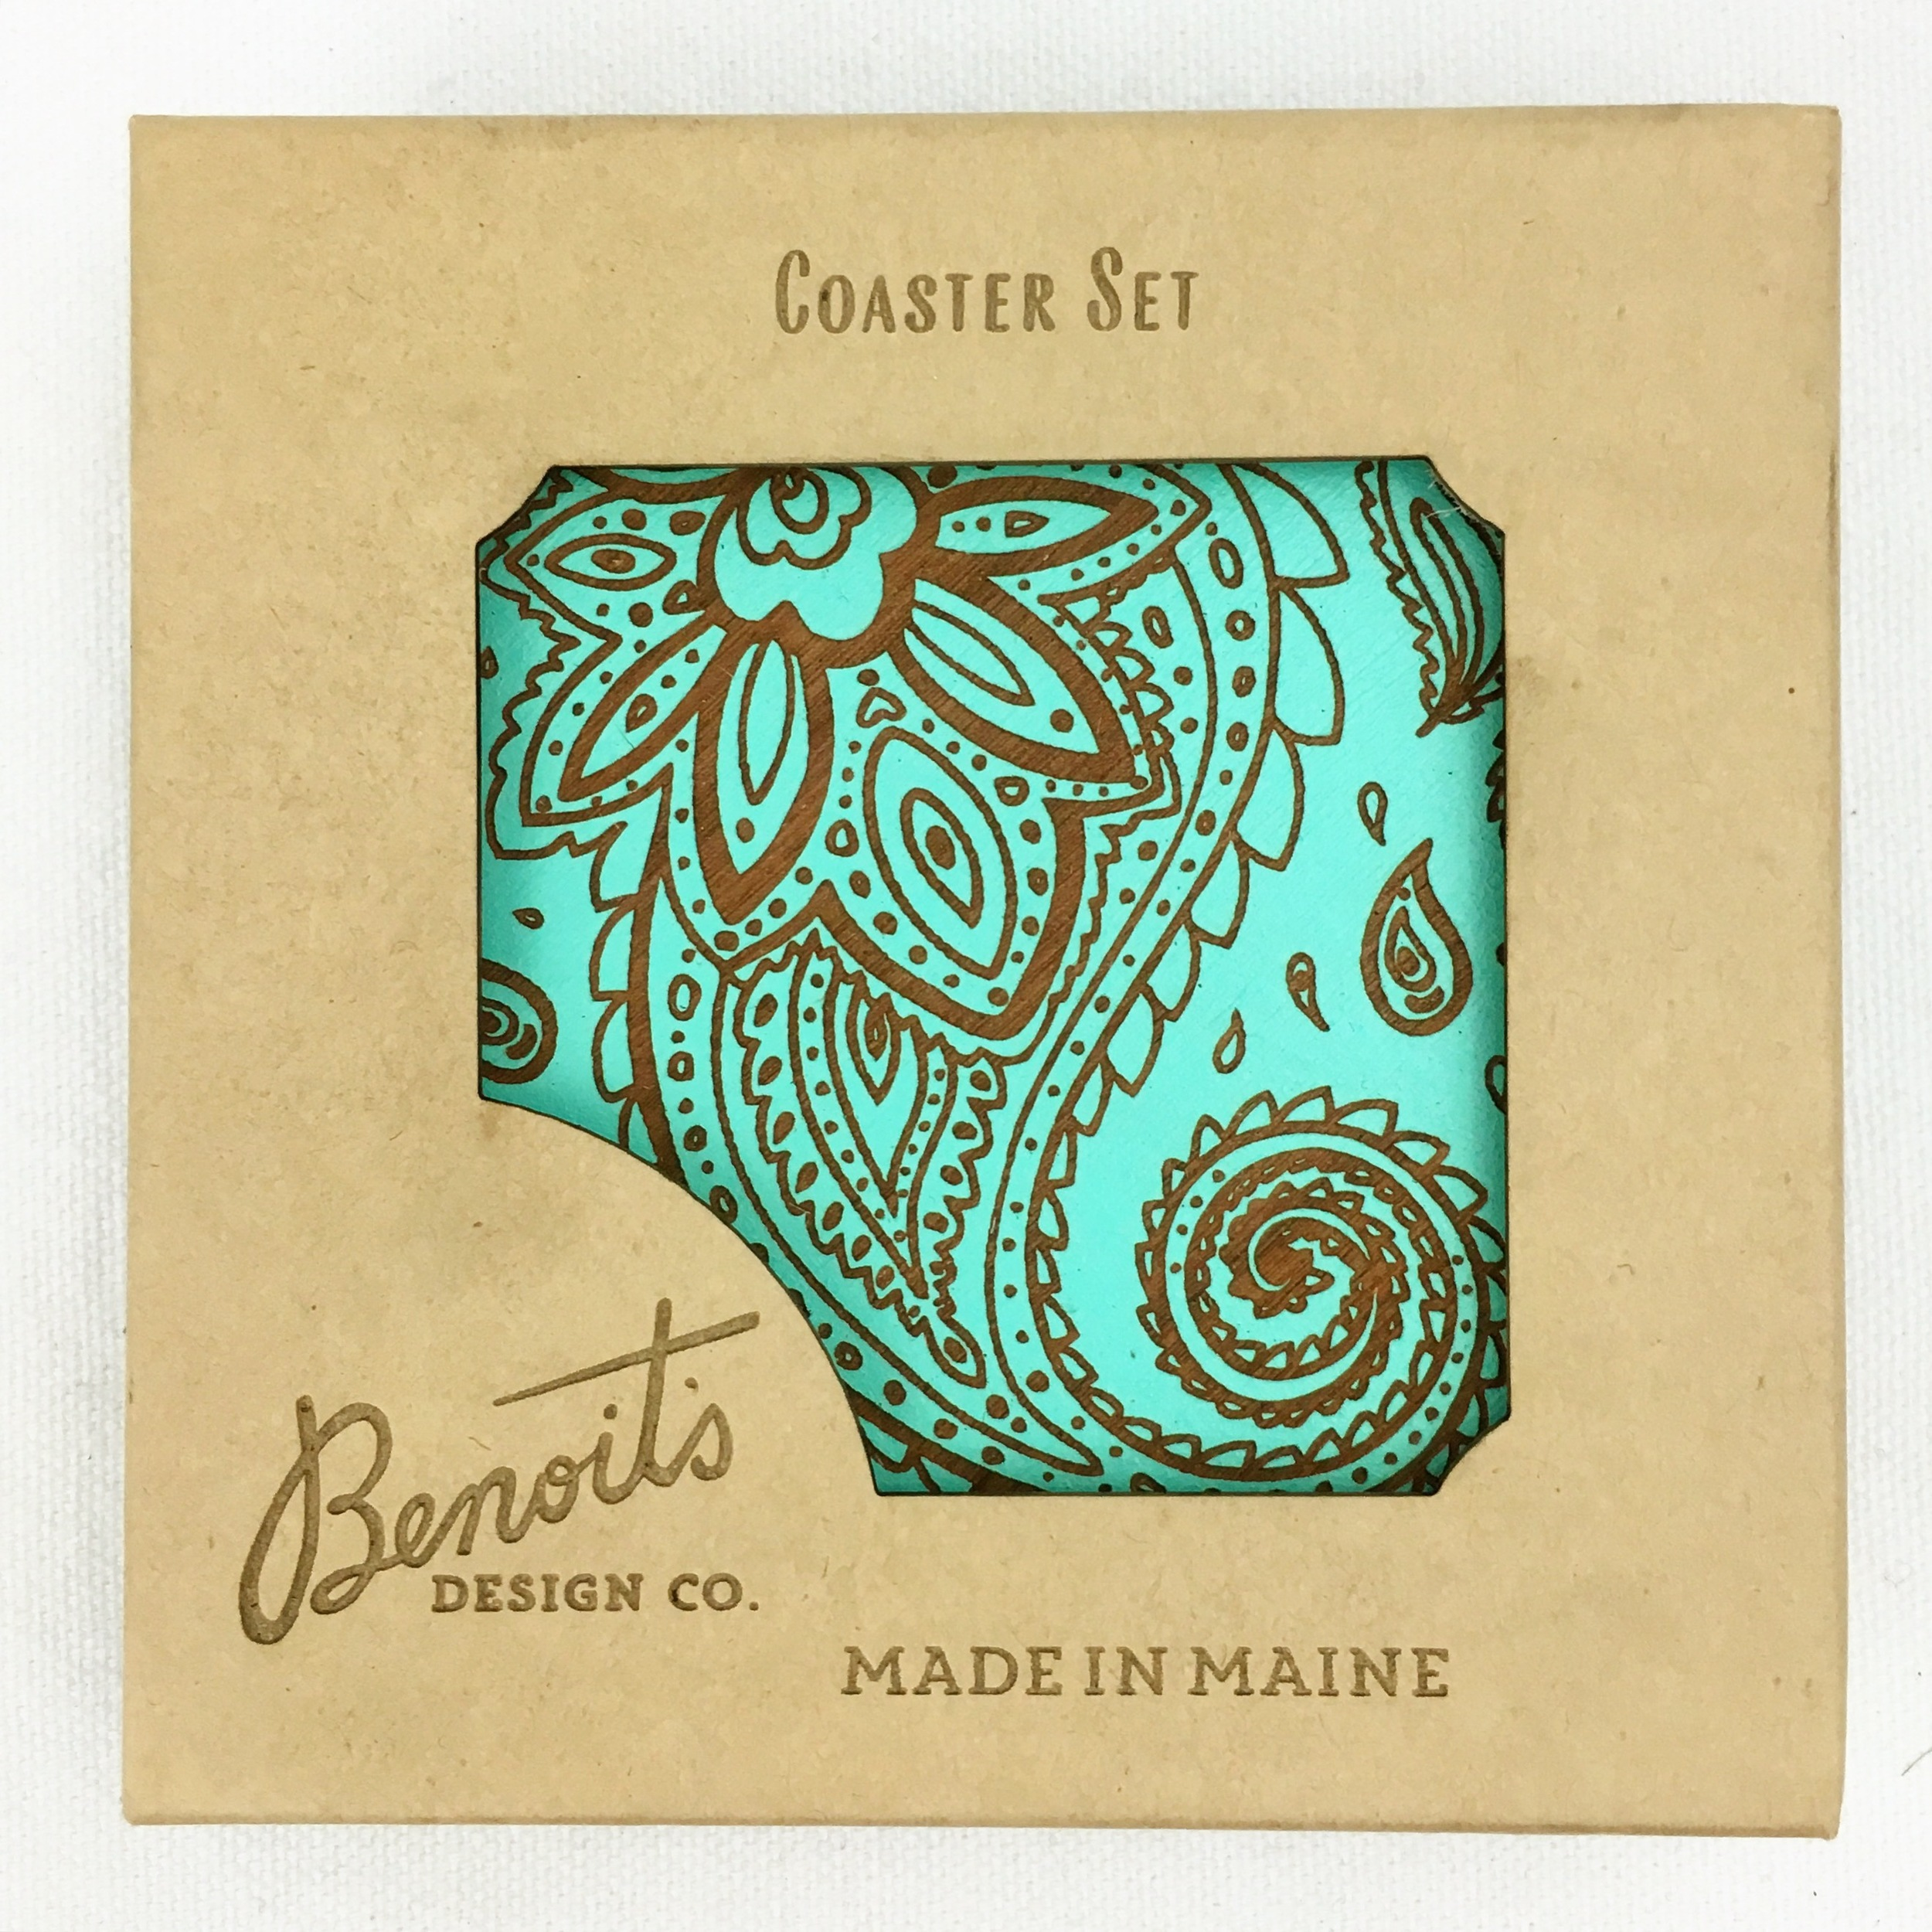 Benoit's Design Co. Coaster Packaging.JPG